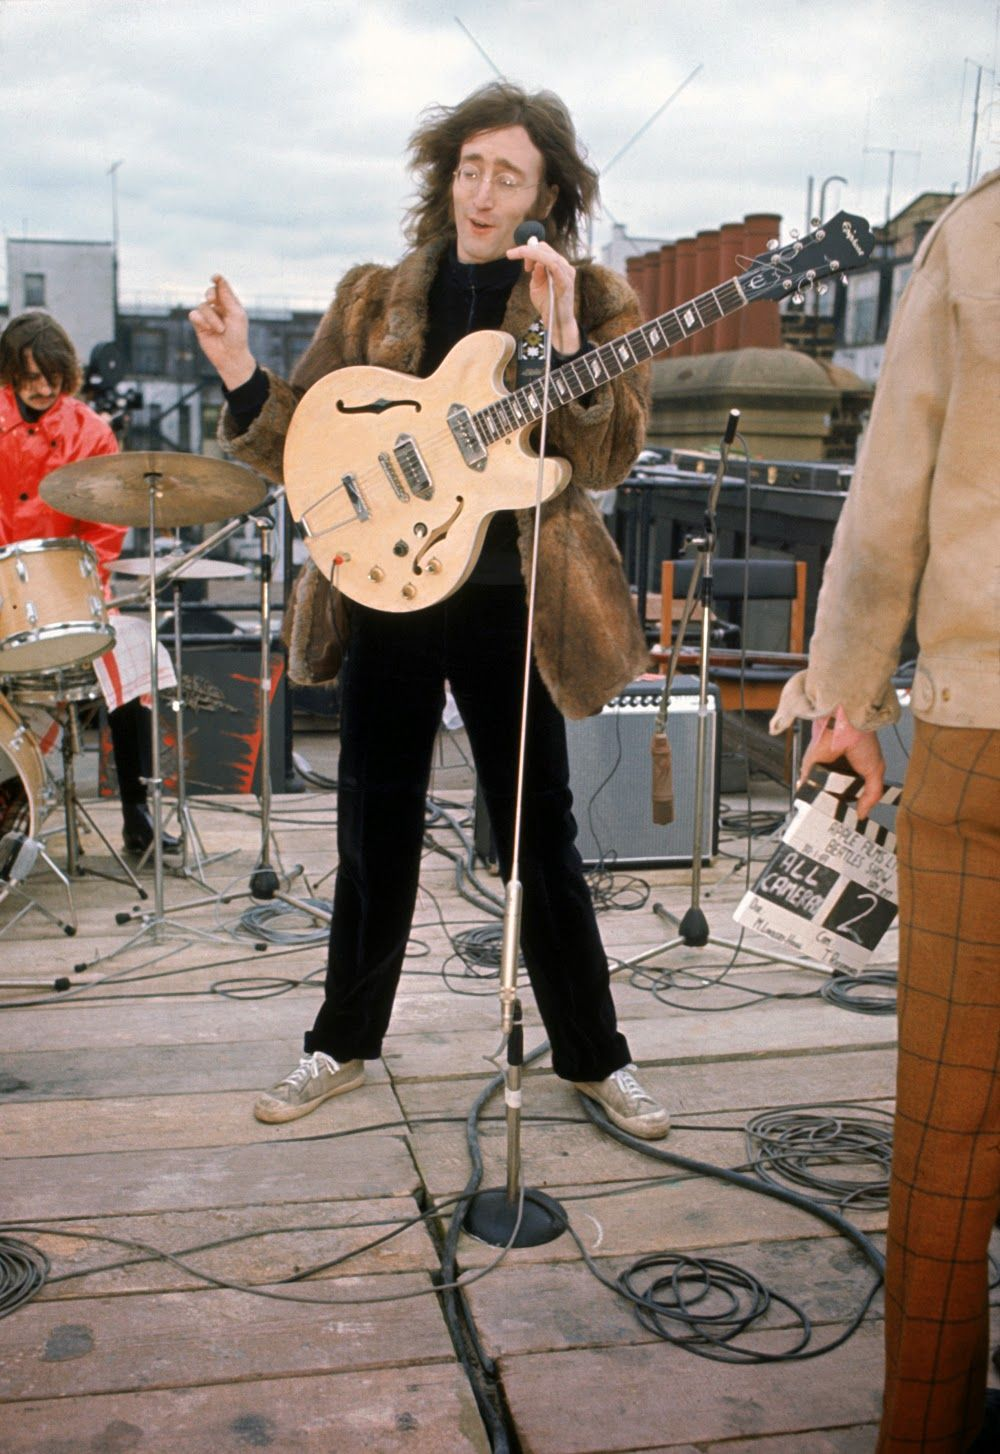 Vintage Everyday Wonderful Color Photographs Of The Beatles Rooftop Concert In 1969 The Beatles Beatles John John Lennon